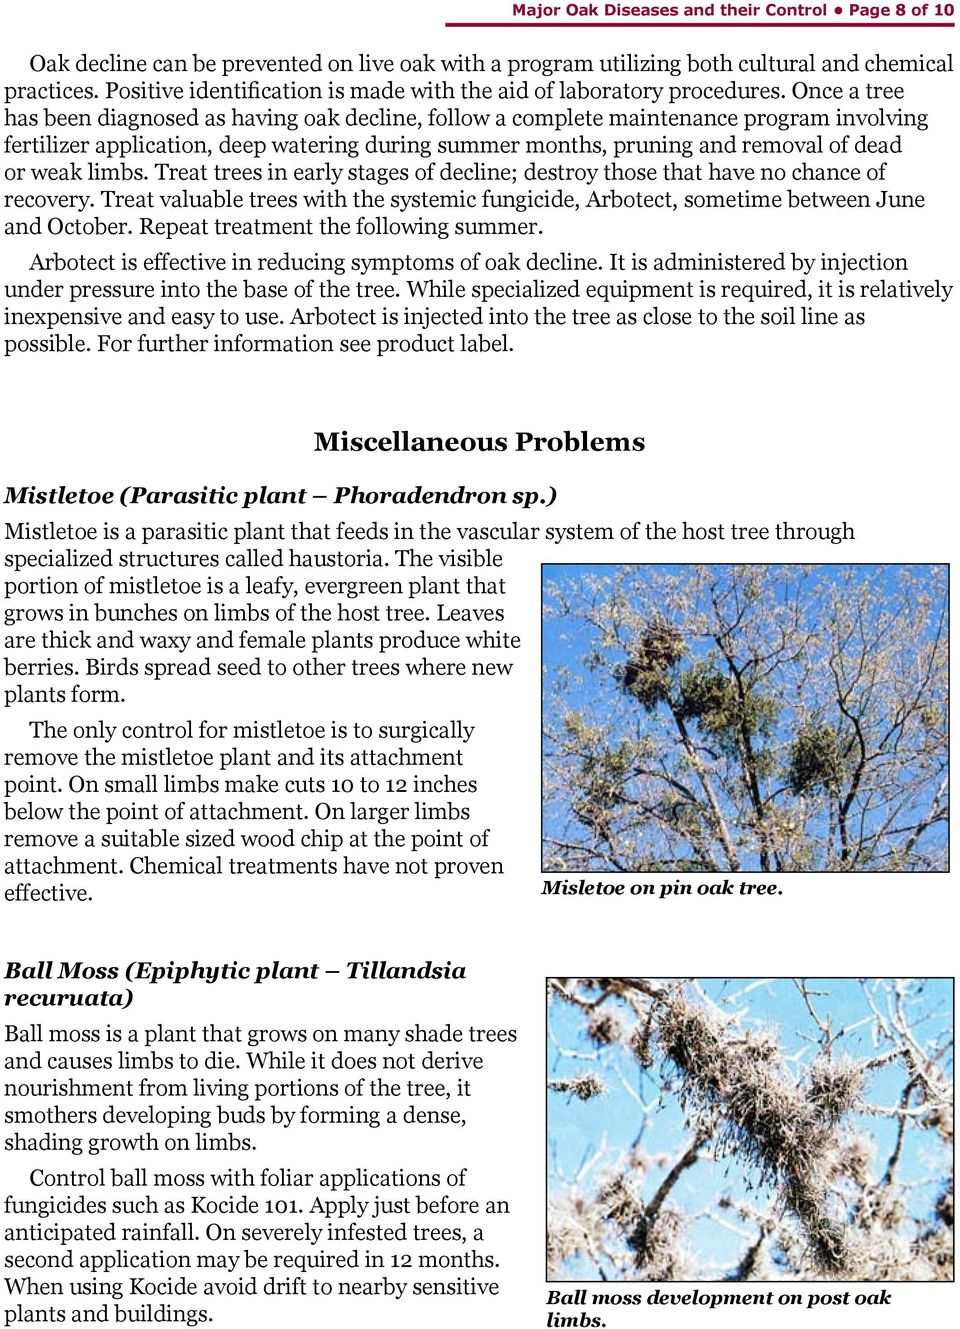 limbs. Treat trees in early stages of decline; destroy those that have no chance of recovery. Treat valuable trees with the systemic fungicide, Arbotect, sometime between June and October.